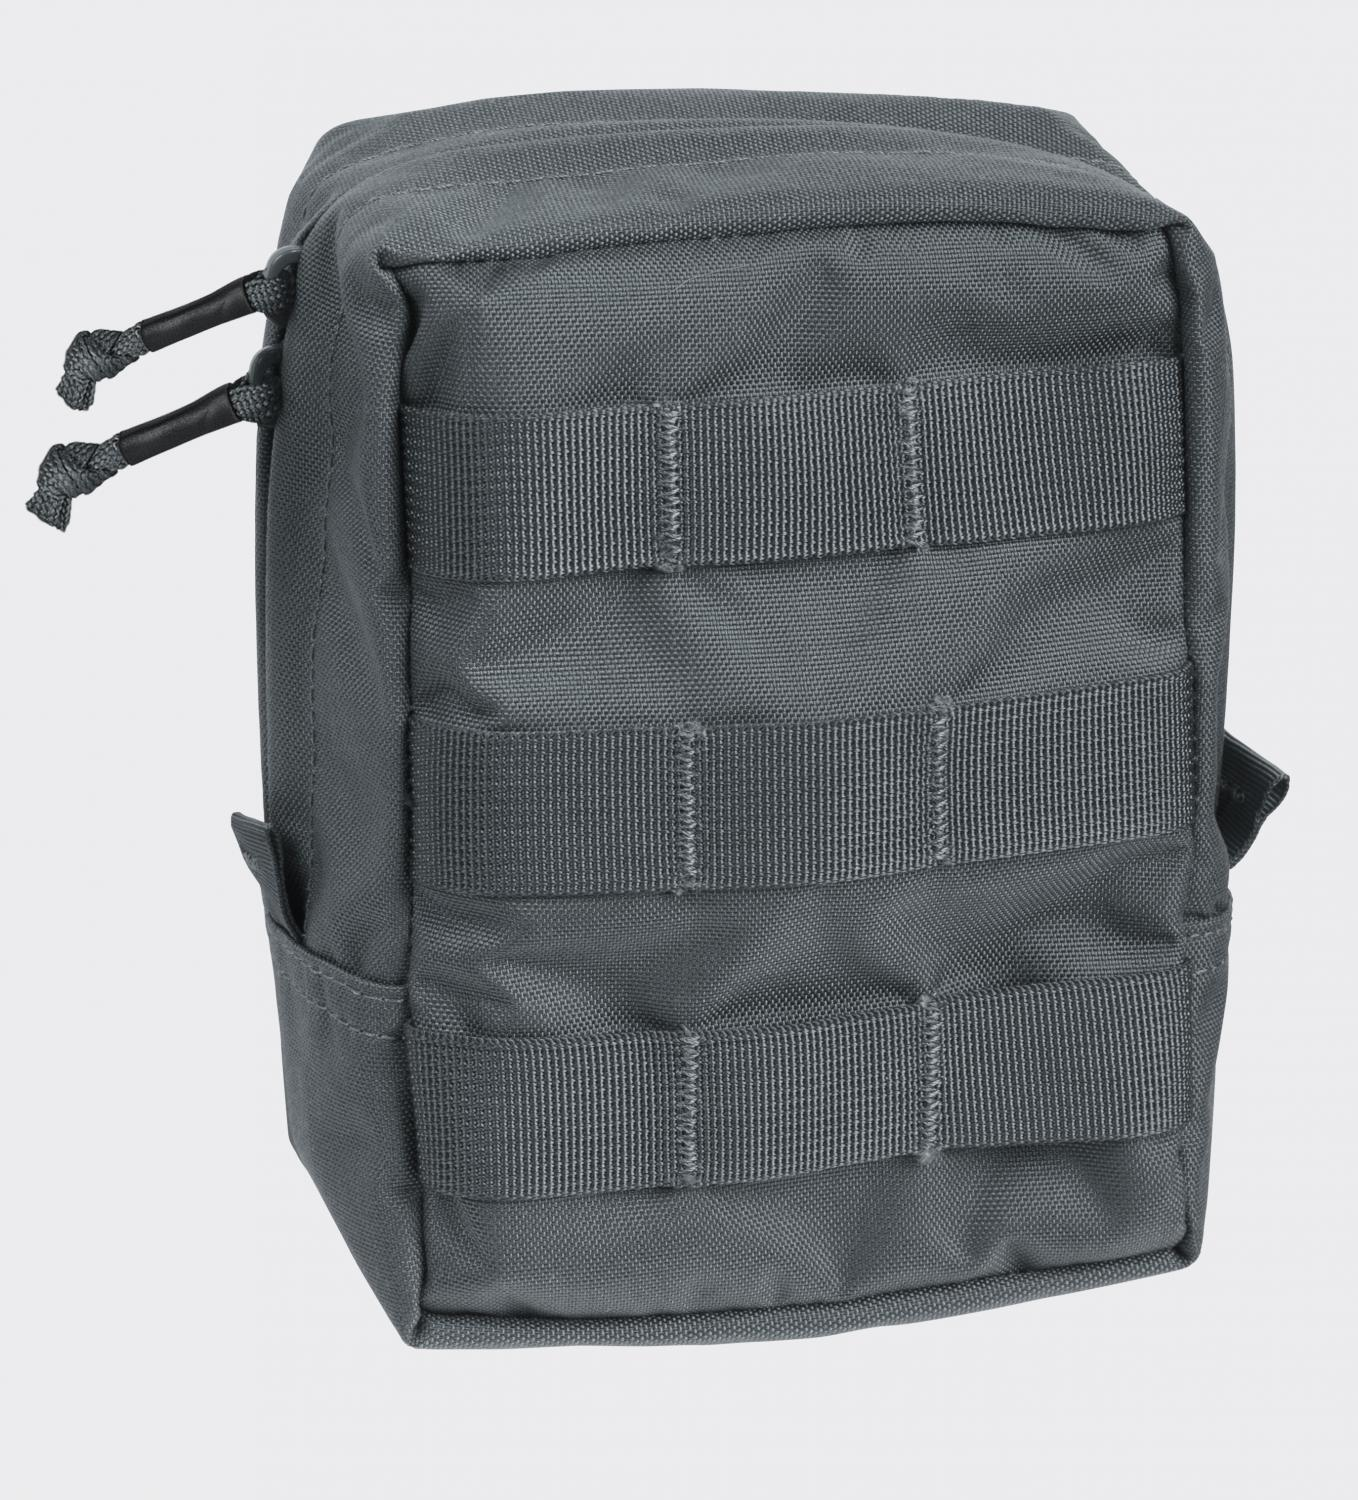 GENERAL PURPOSE CARGO® Pouch [U.05] - Cordura Shadow Grey